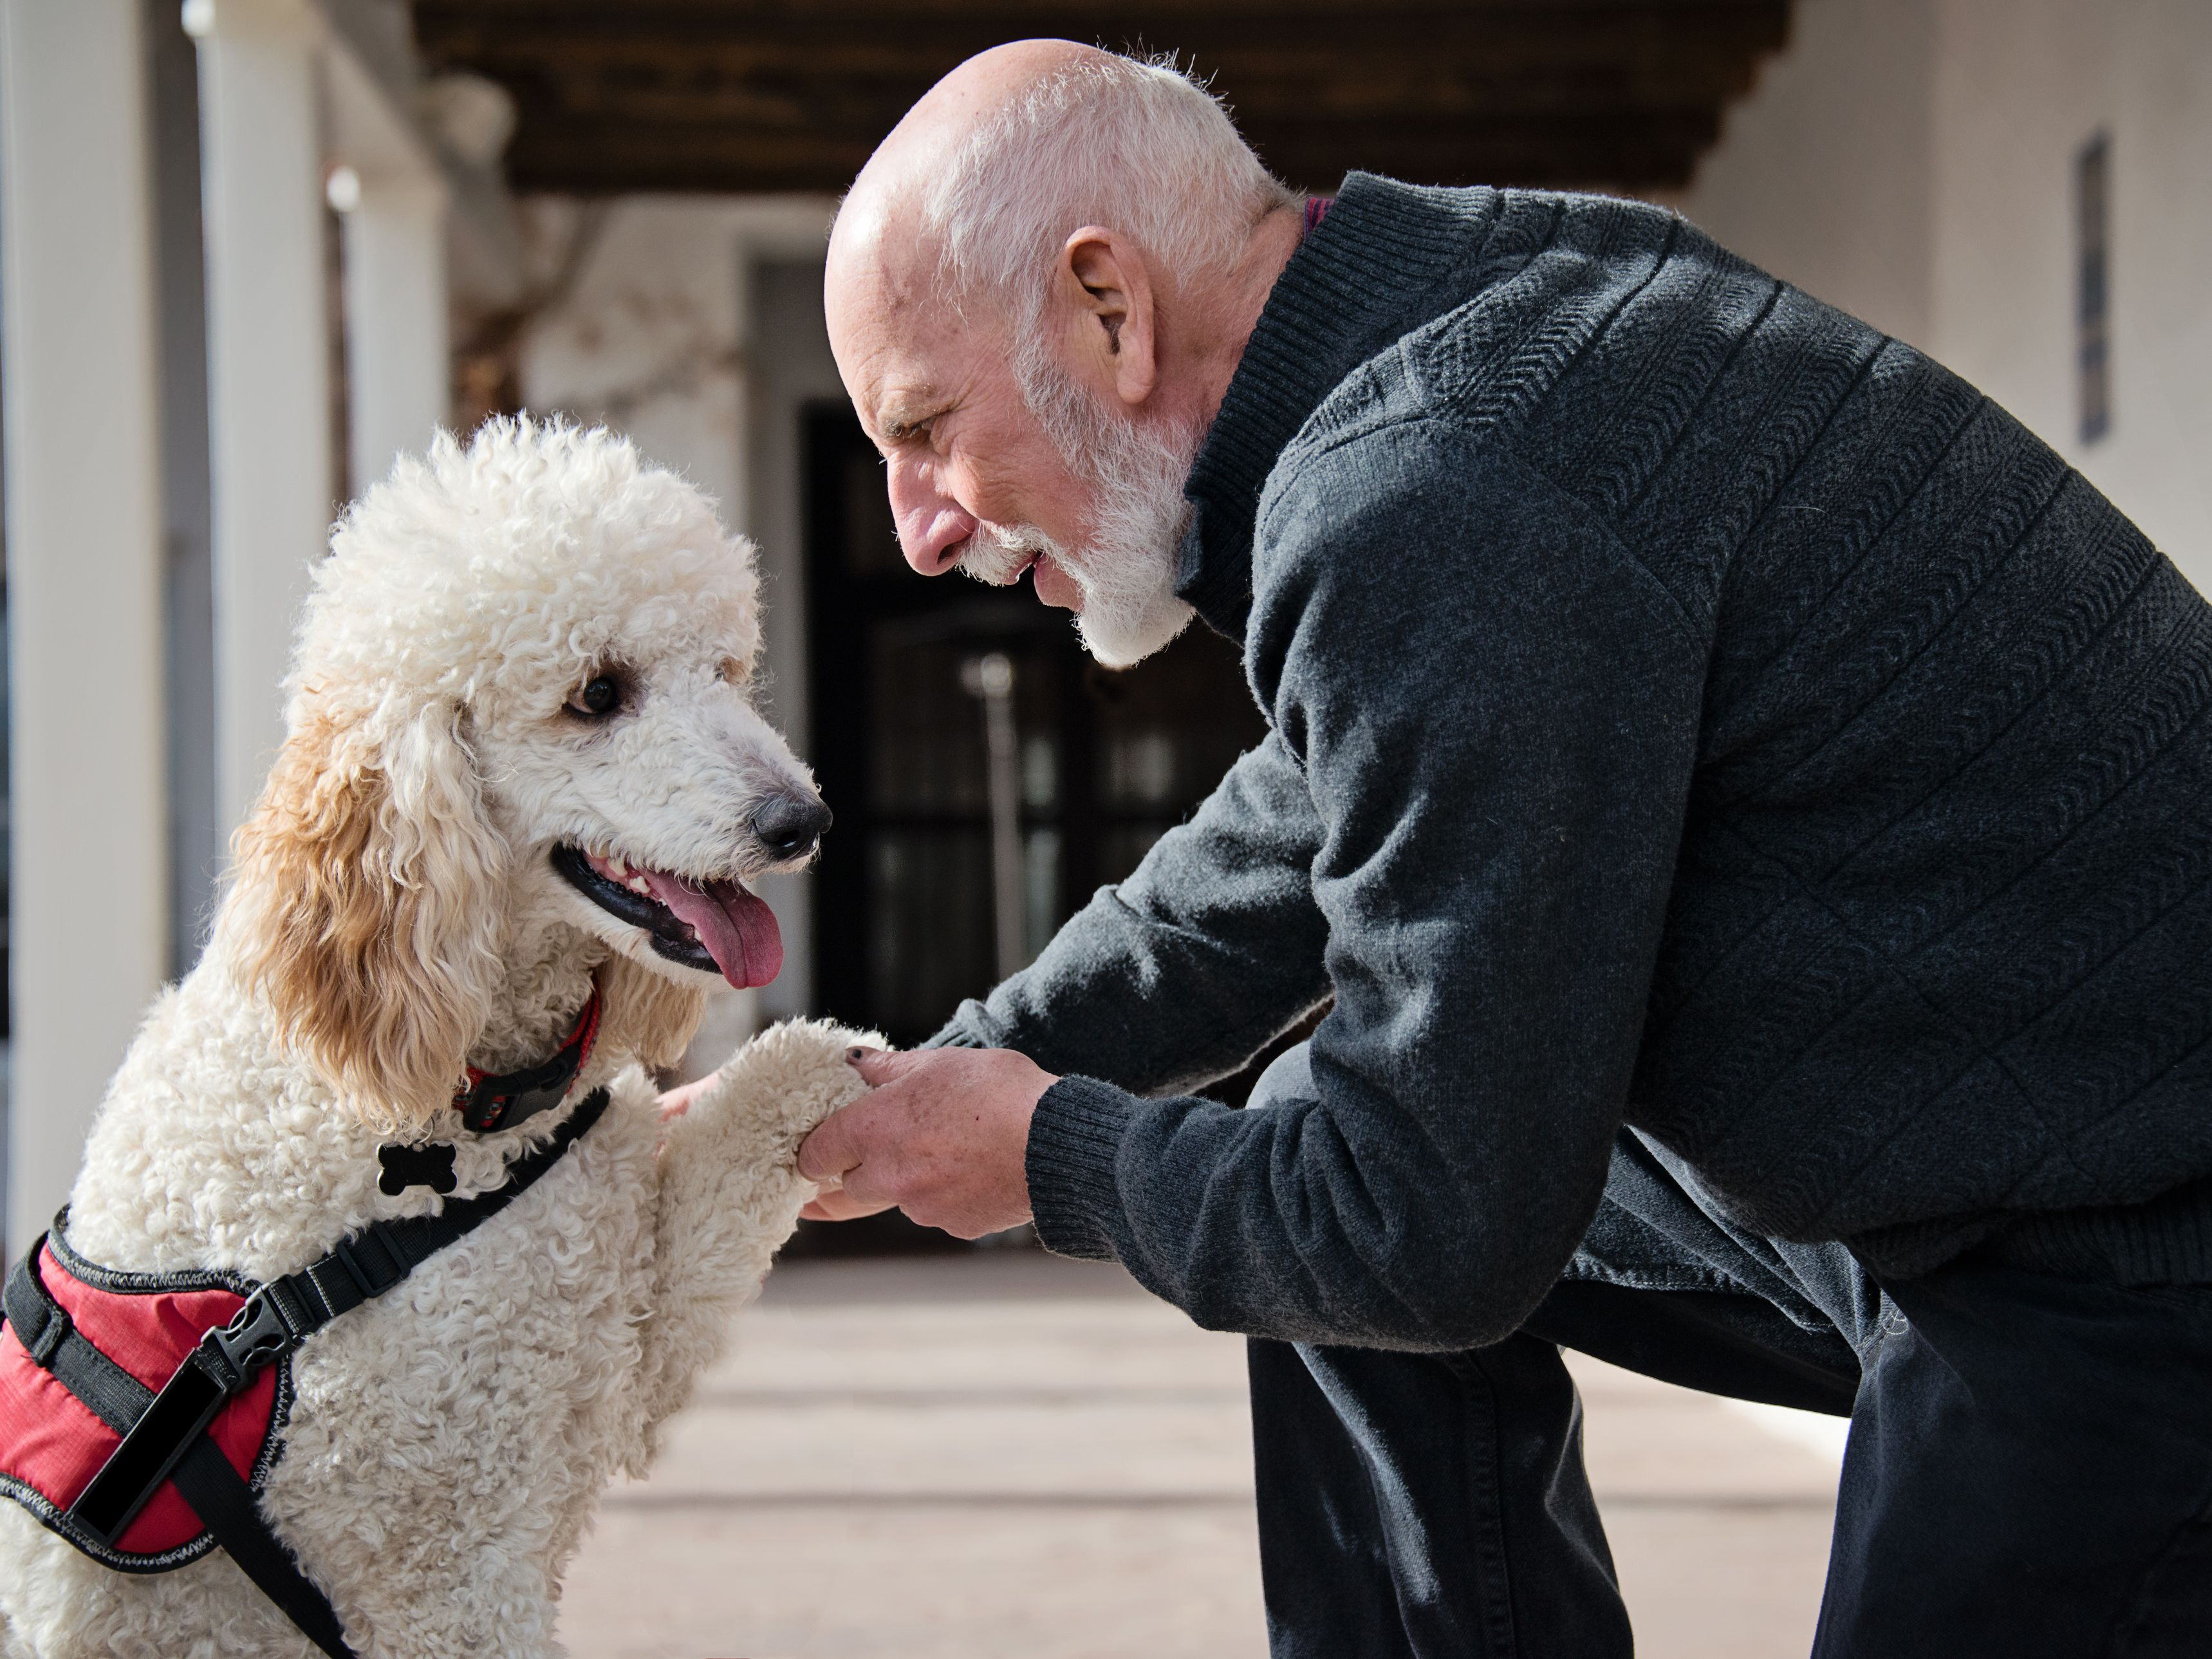 Dealing With Service Dogs, the ADA, and PTSD